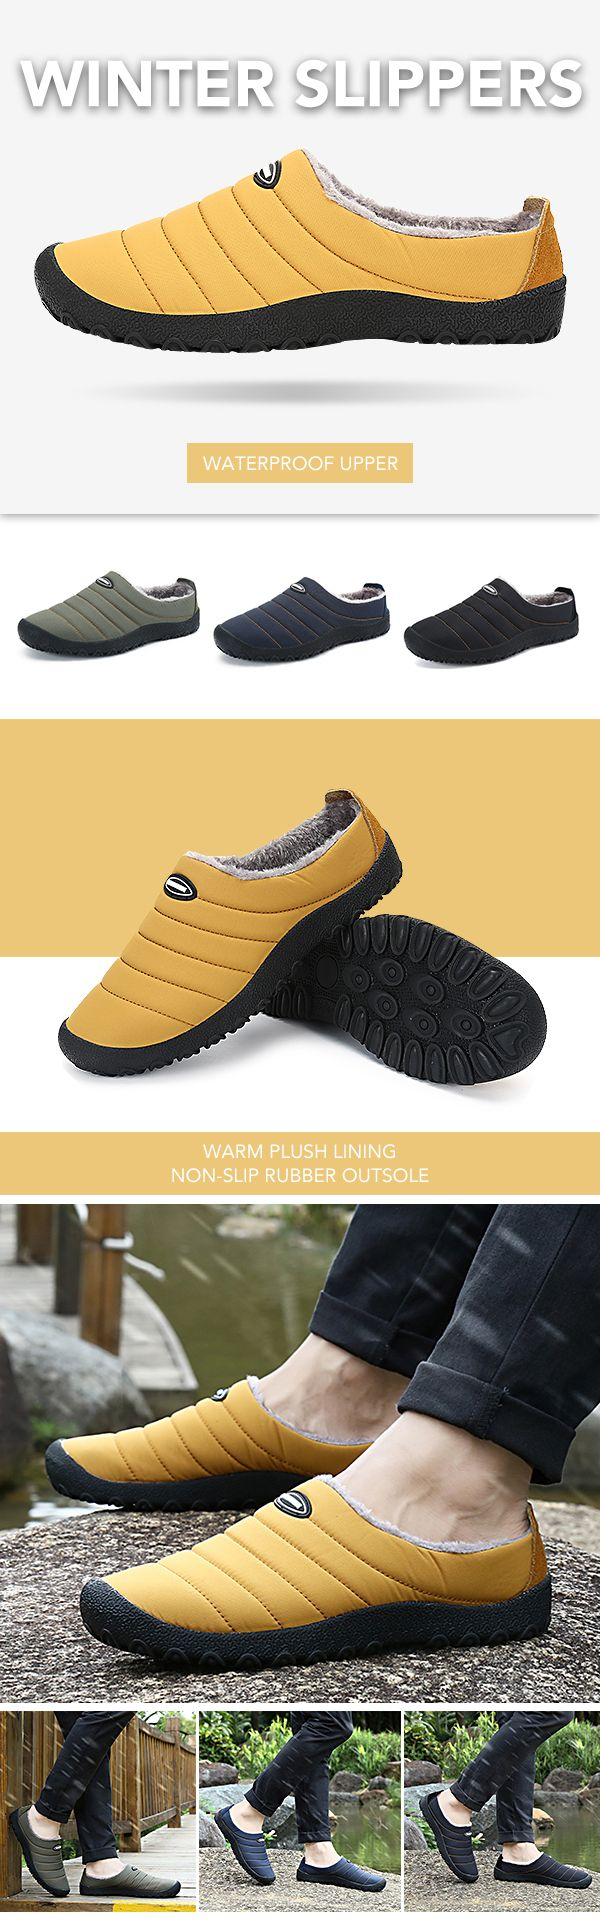 bd3fc4c92 US$28.85 Men Plush Lining Waterproof Cloth Slip On Soft Sole Casual Slippers